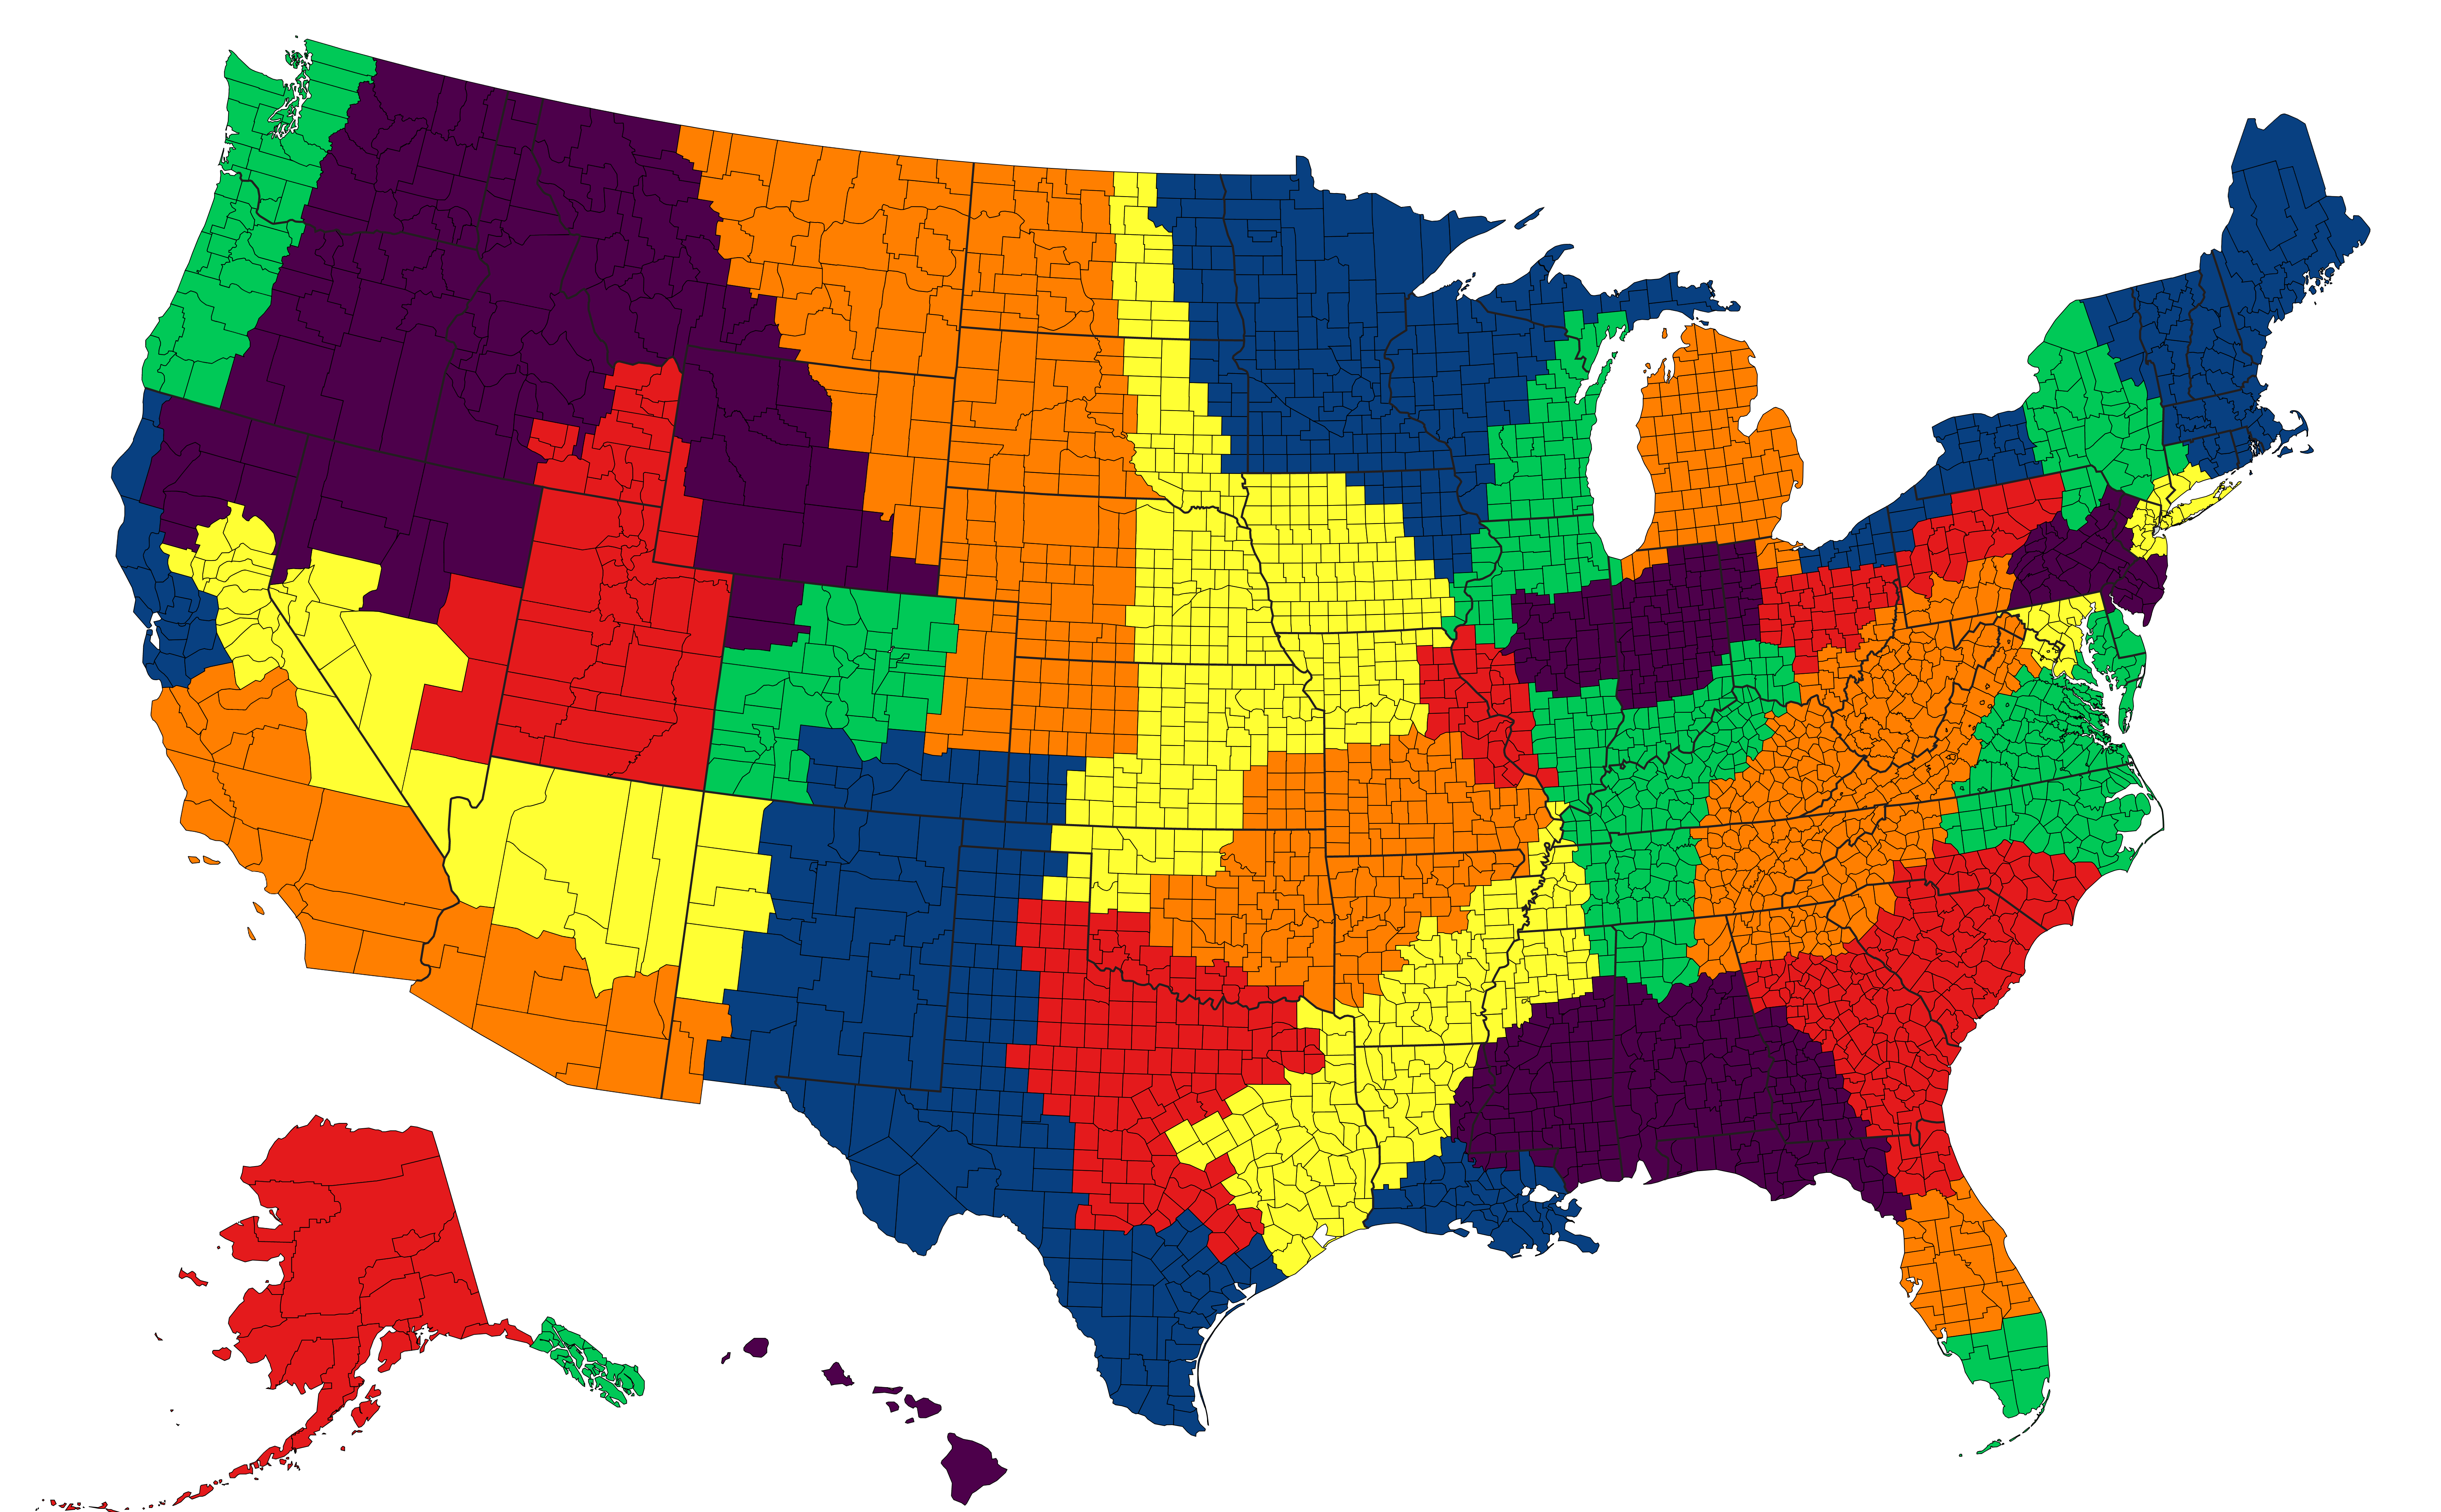 Proposed New Us States Based On Cultural Regions Weird Maps Us - Cultural-map-of-the-us